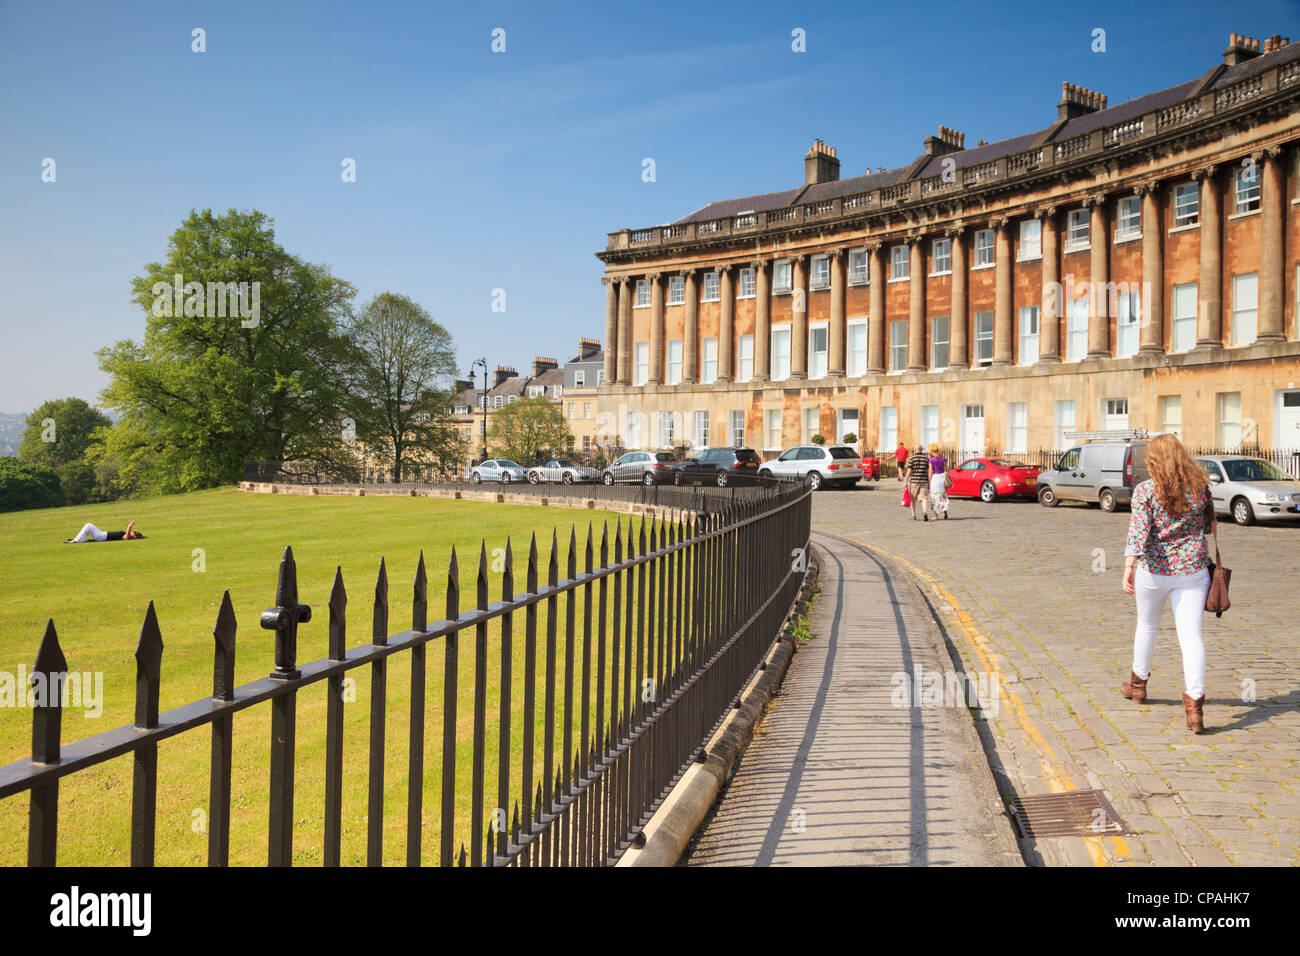 Royal Crescent in Bath, one of the city's great landmarks. - Stock Image